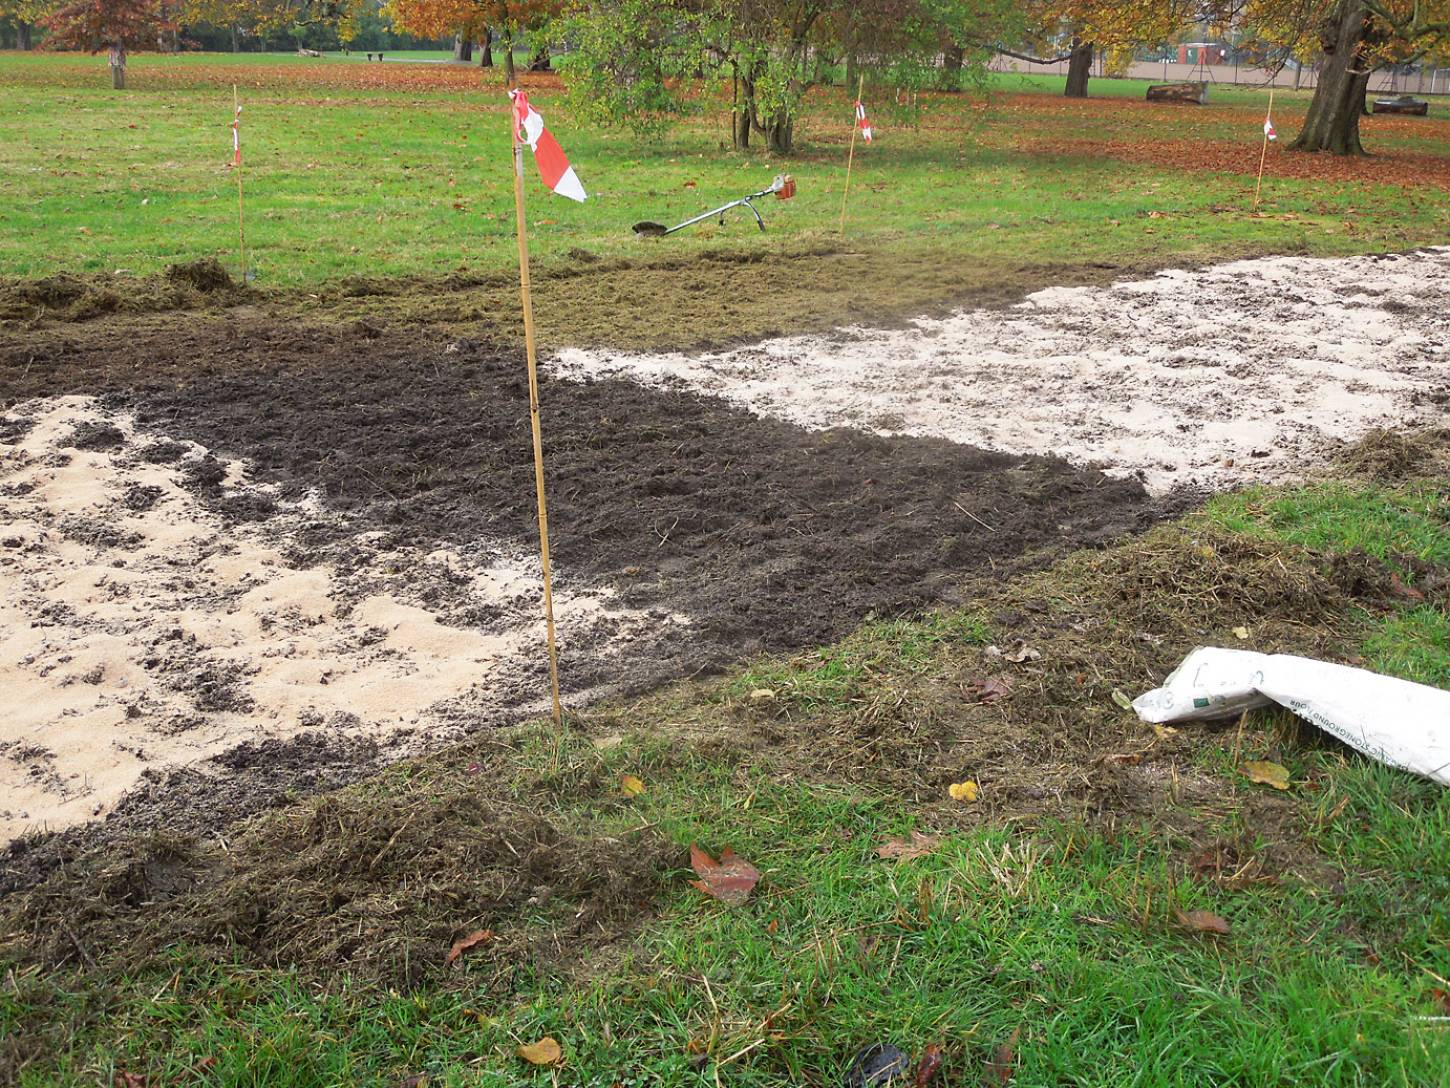 preparing ground for Ruskin Park season 2016/17 - control strip without bran - 1:43pm&nbsp;14<sup>th</sup>&nbsp;Nov.&nbsp;'16